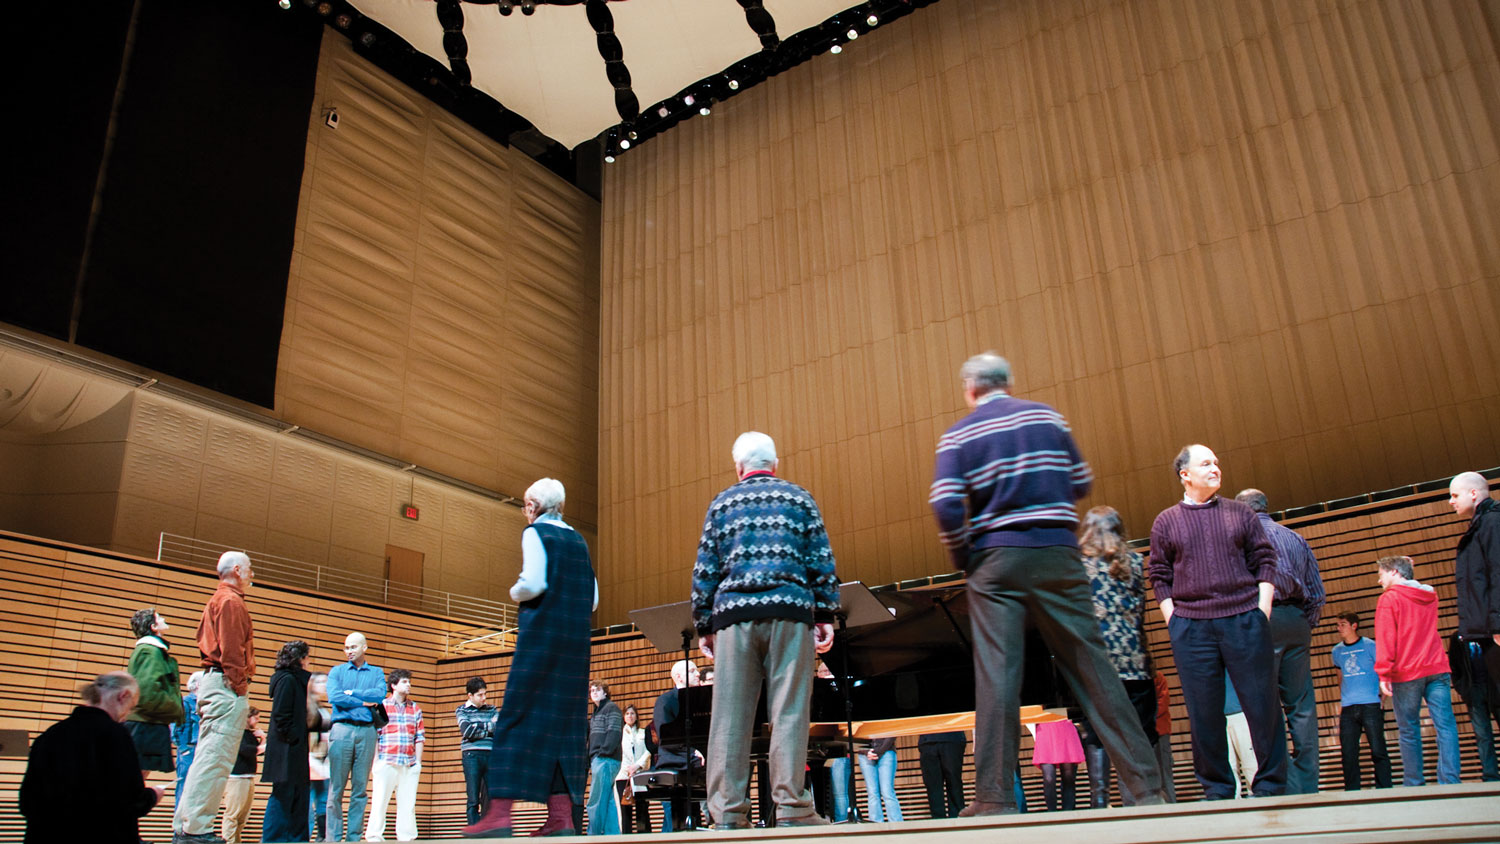 listeners circumnavigate a piano on stage in the concert hall